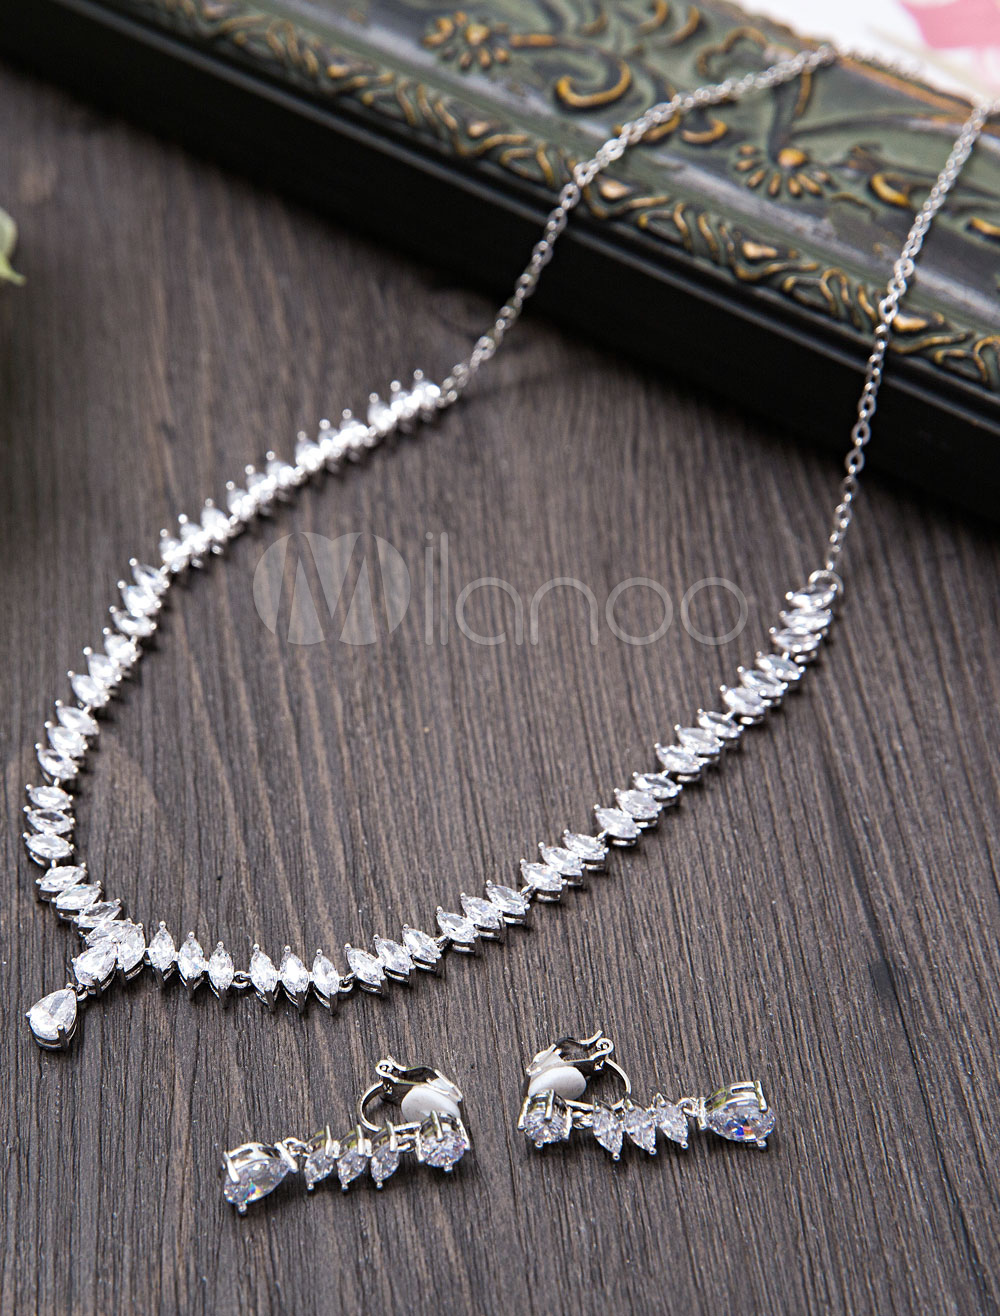 Silver Wedding Jewelry Beaded Zirconia Bridal Necklace Set With Clip On Earrings